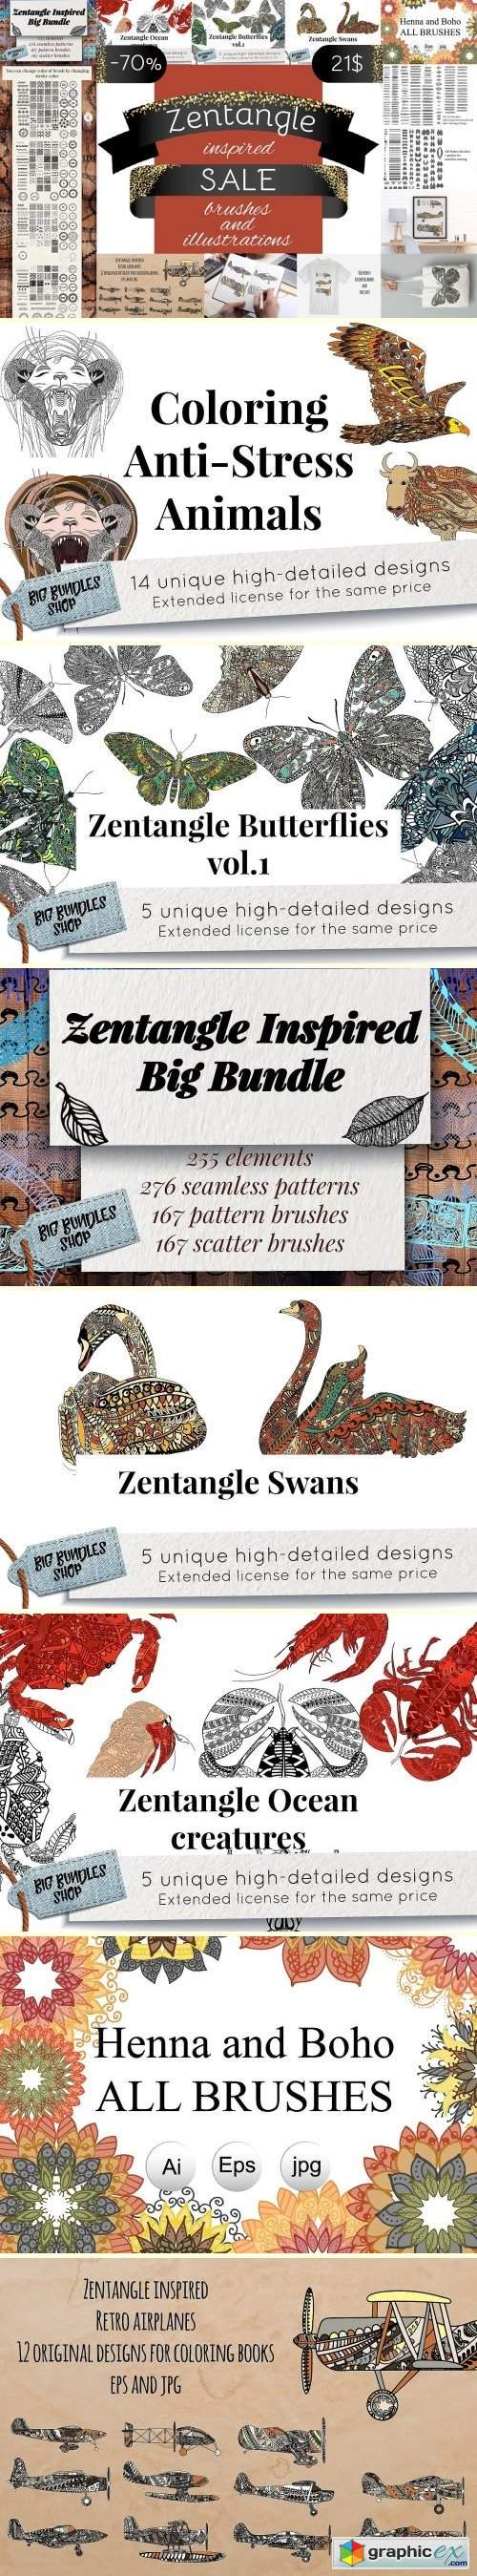 70% off Zentangle inspired SALE